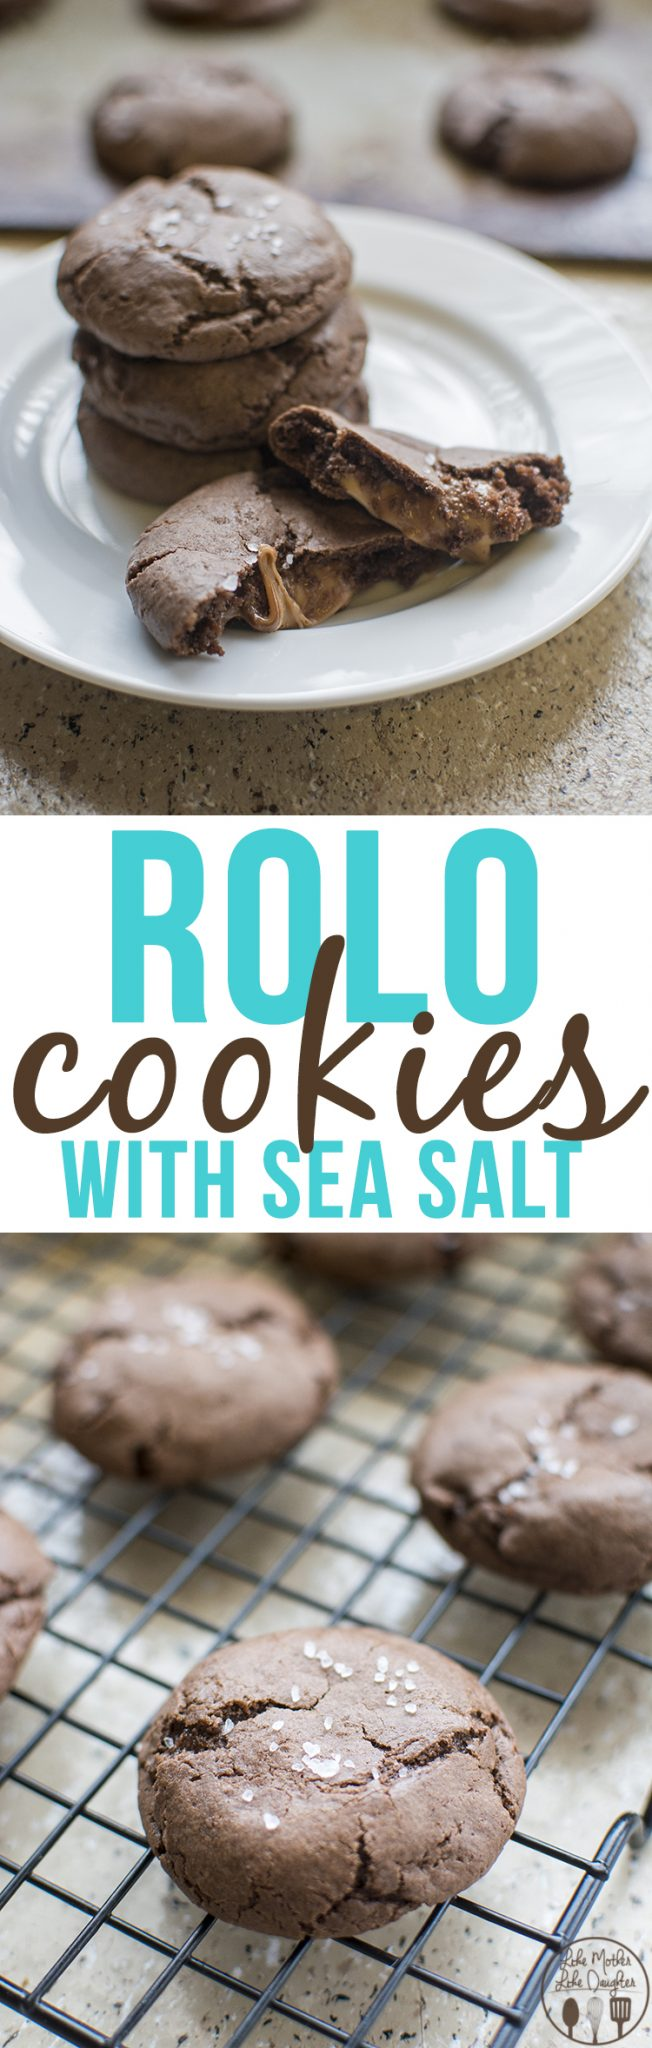 Rolo Cookies with Sea Salt - a delicious caramel and chocolate cookie that has the perfect sweet and salty taste. Only 5 ingredients for an easy and amazing cookie!